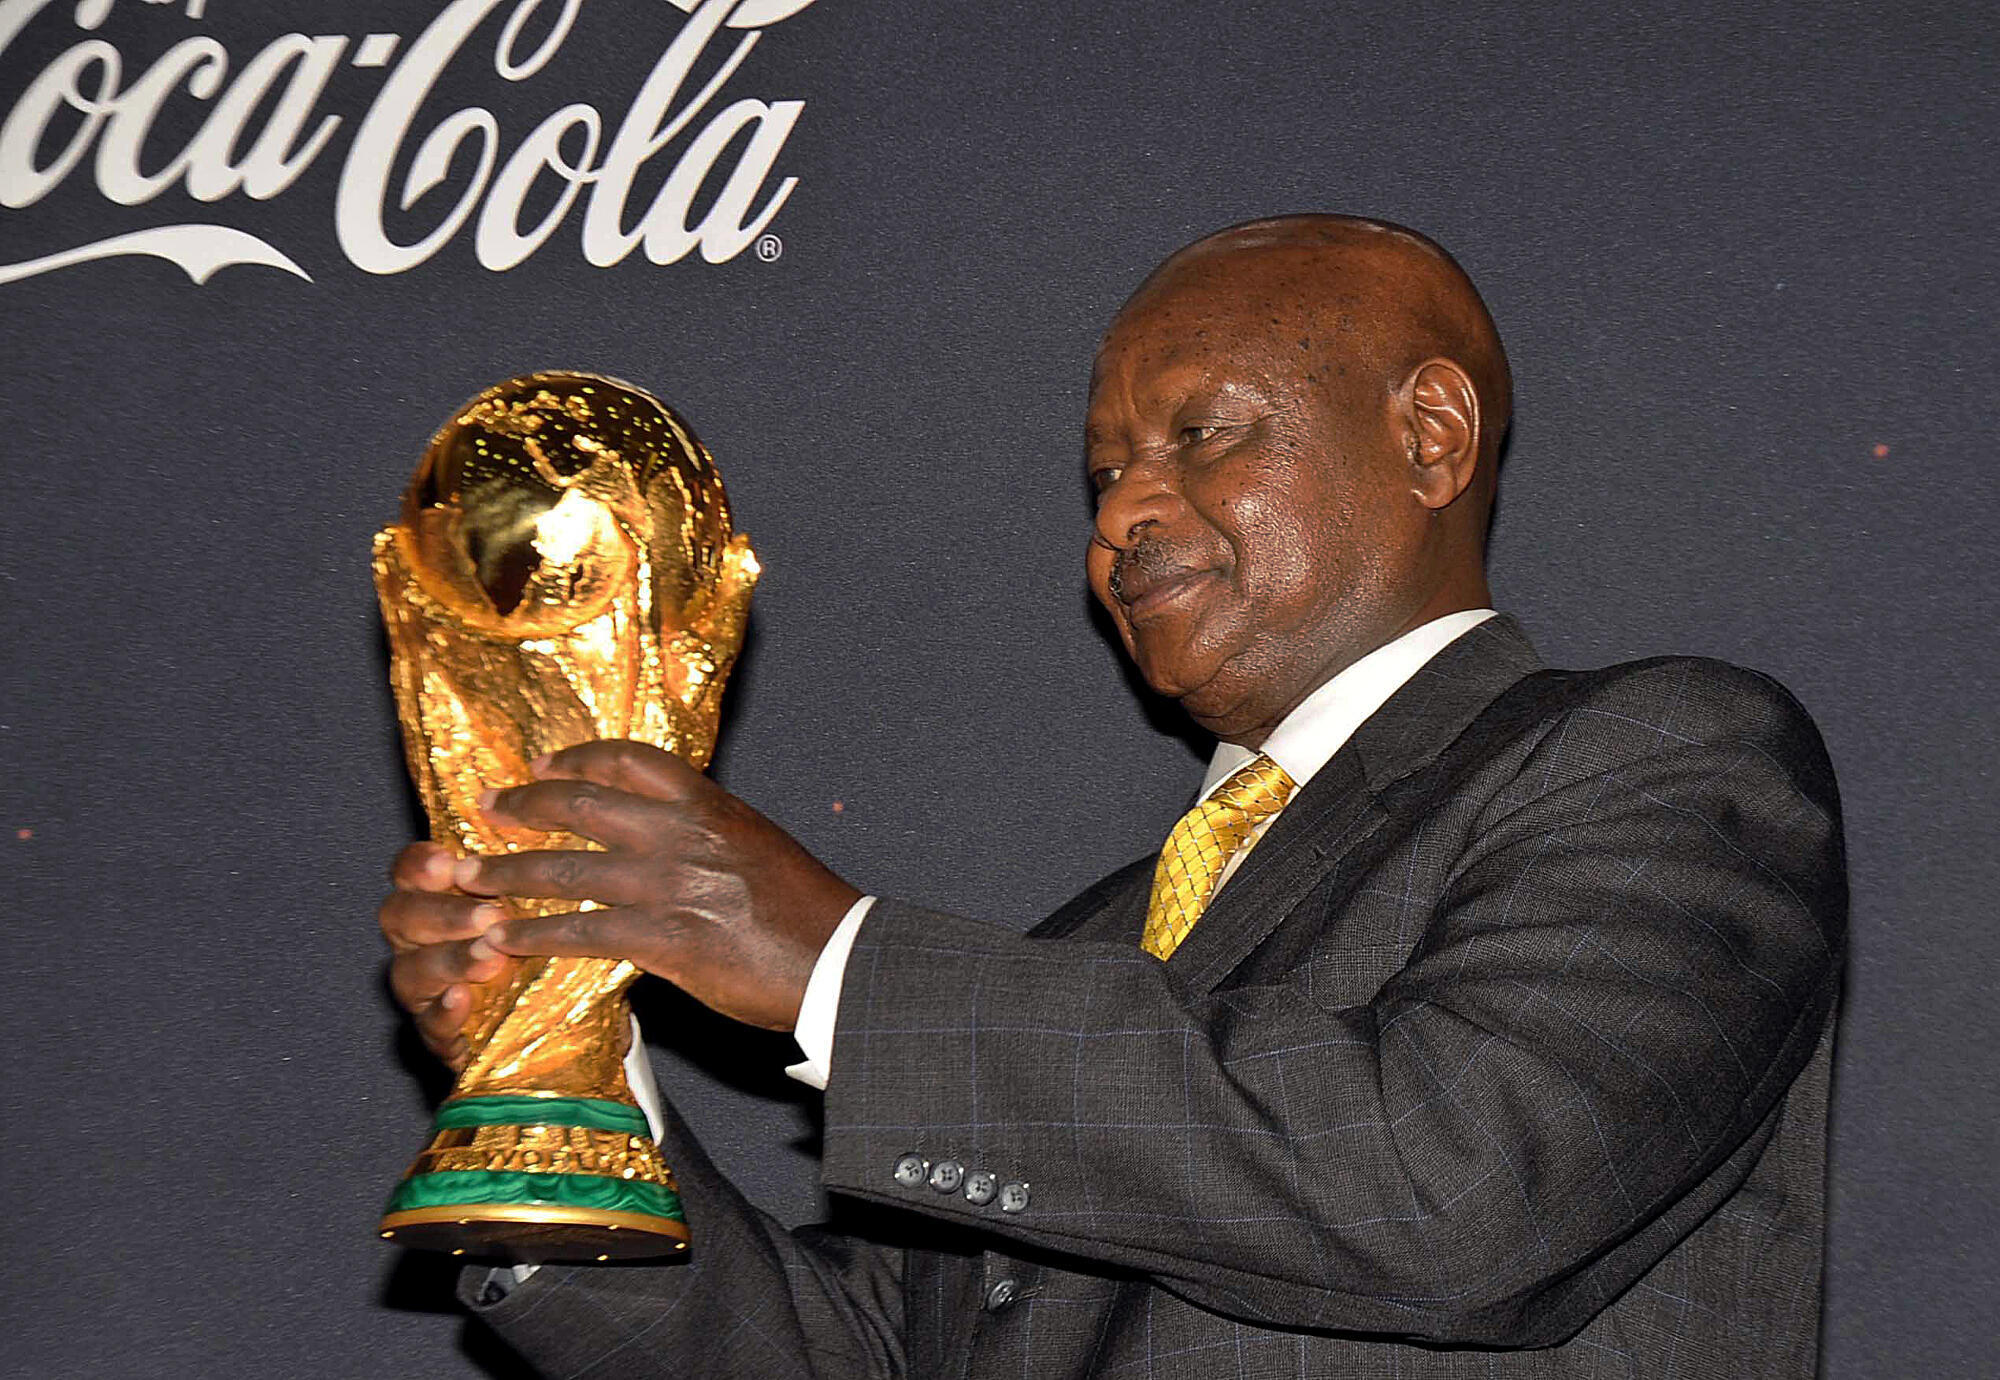 Museveni lifts the FIFA World Cup trophy at State House, Entebbe on 15 November 2009.